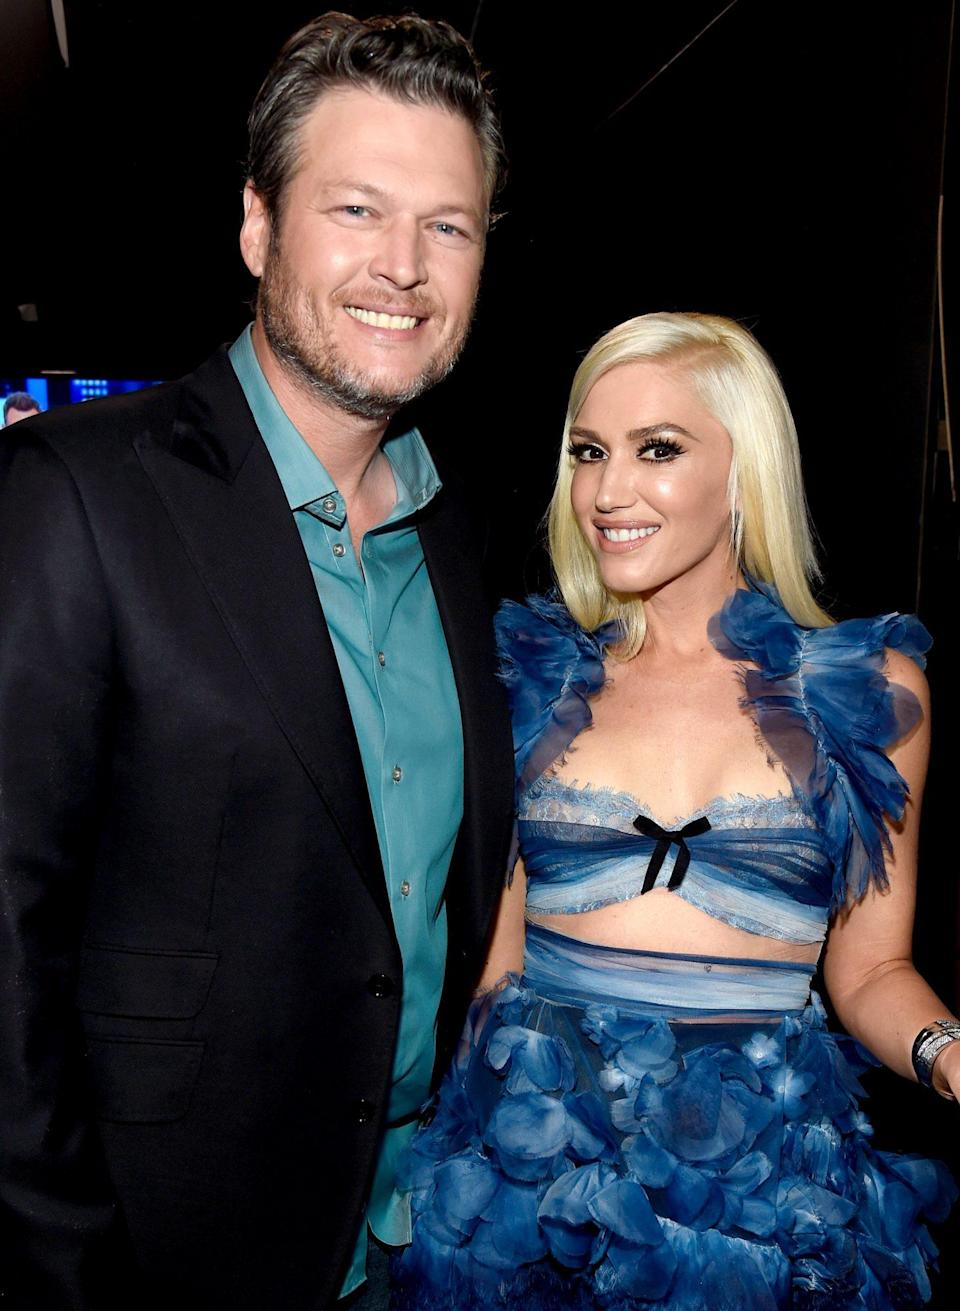 <p>In 2019, Stefani returned to <em>The Voice</em>, making the pair coworkers yet again.</p>